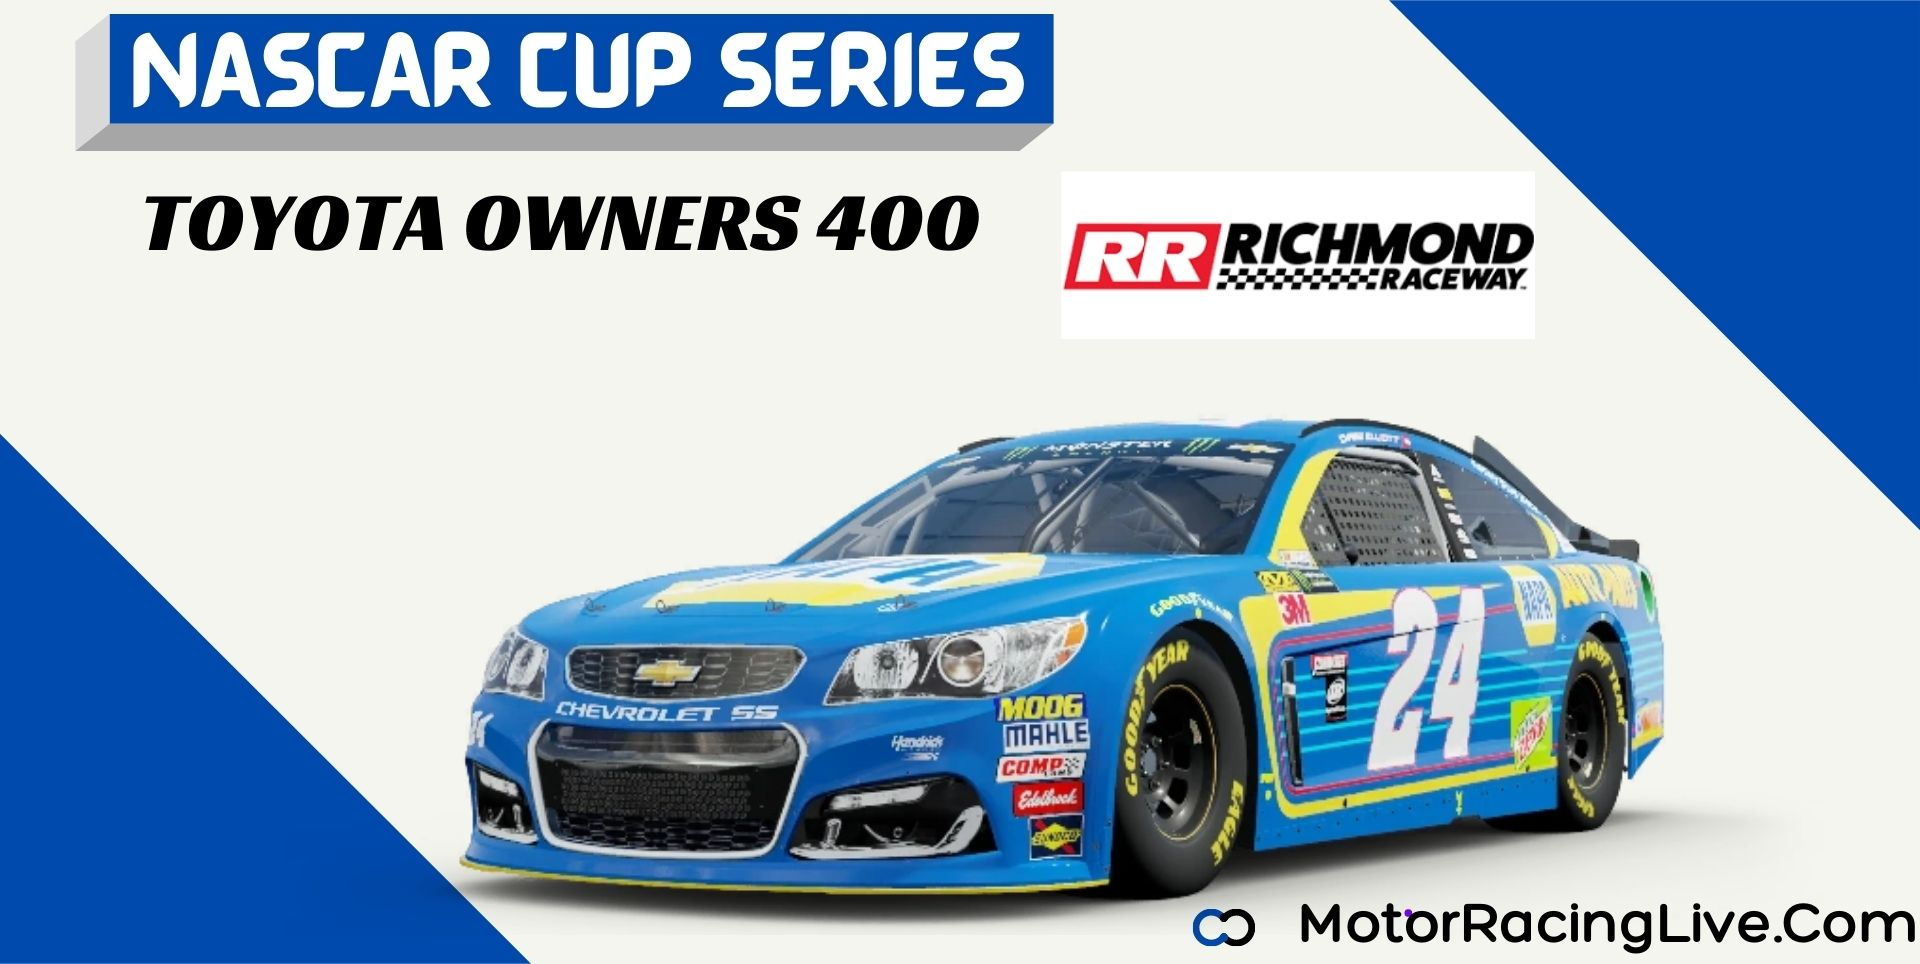 TOYOTA OWNERS 400 Nascar Cup 2021 Live Stream